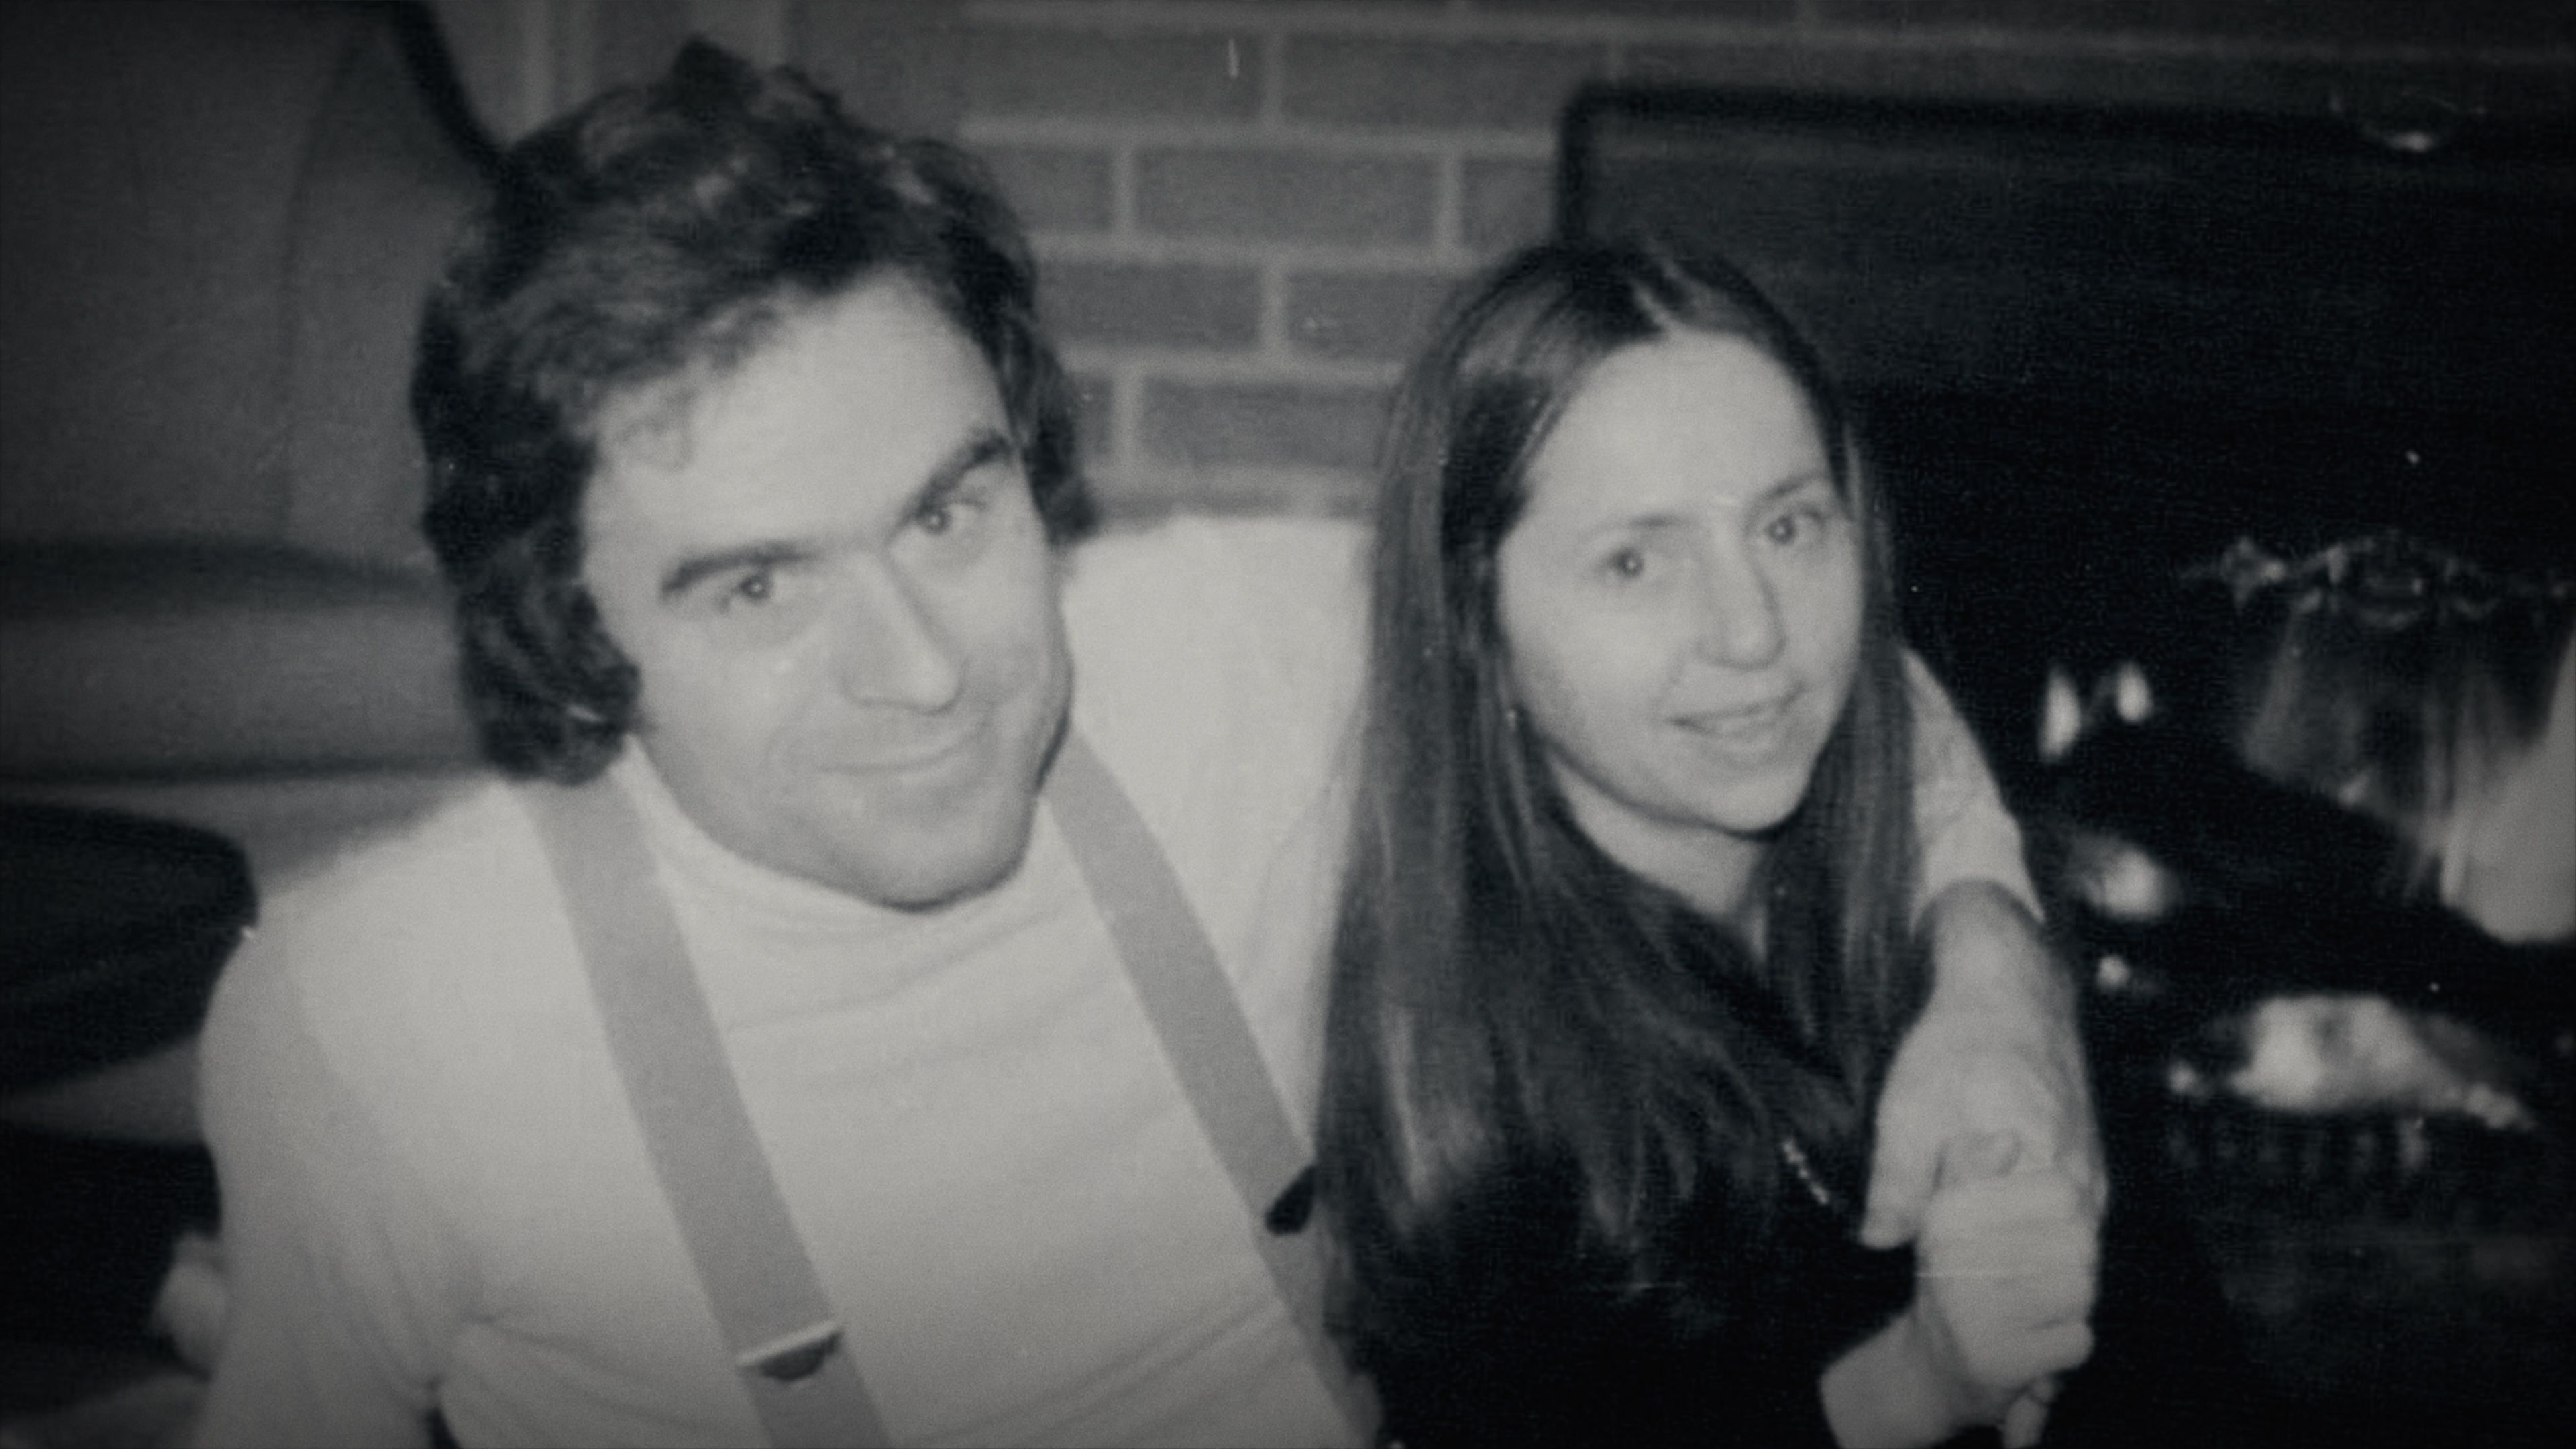 The real Elizabeth Kendall had found clues before Ted Bundy was arrested.